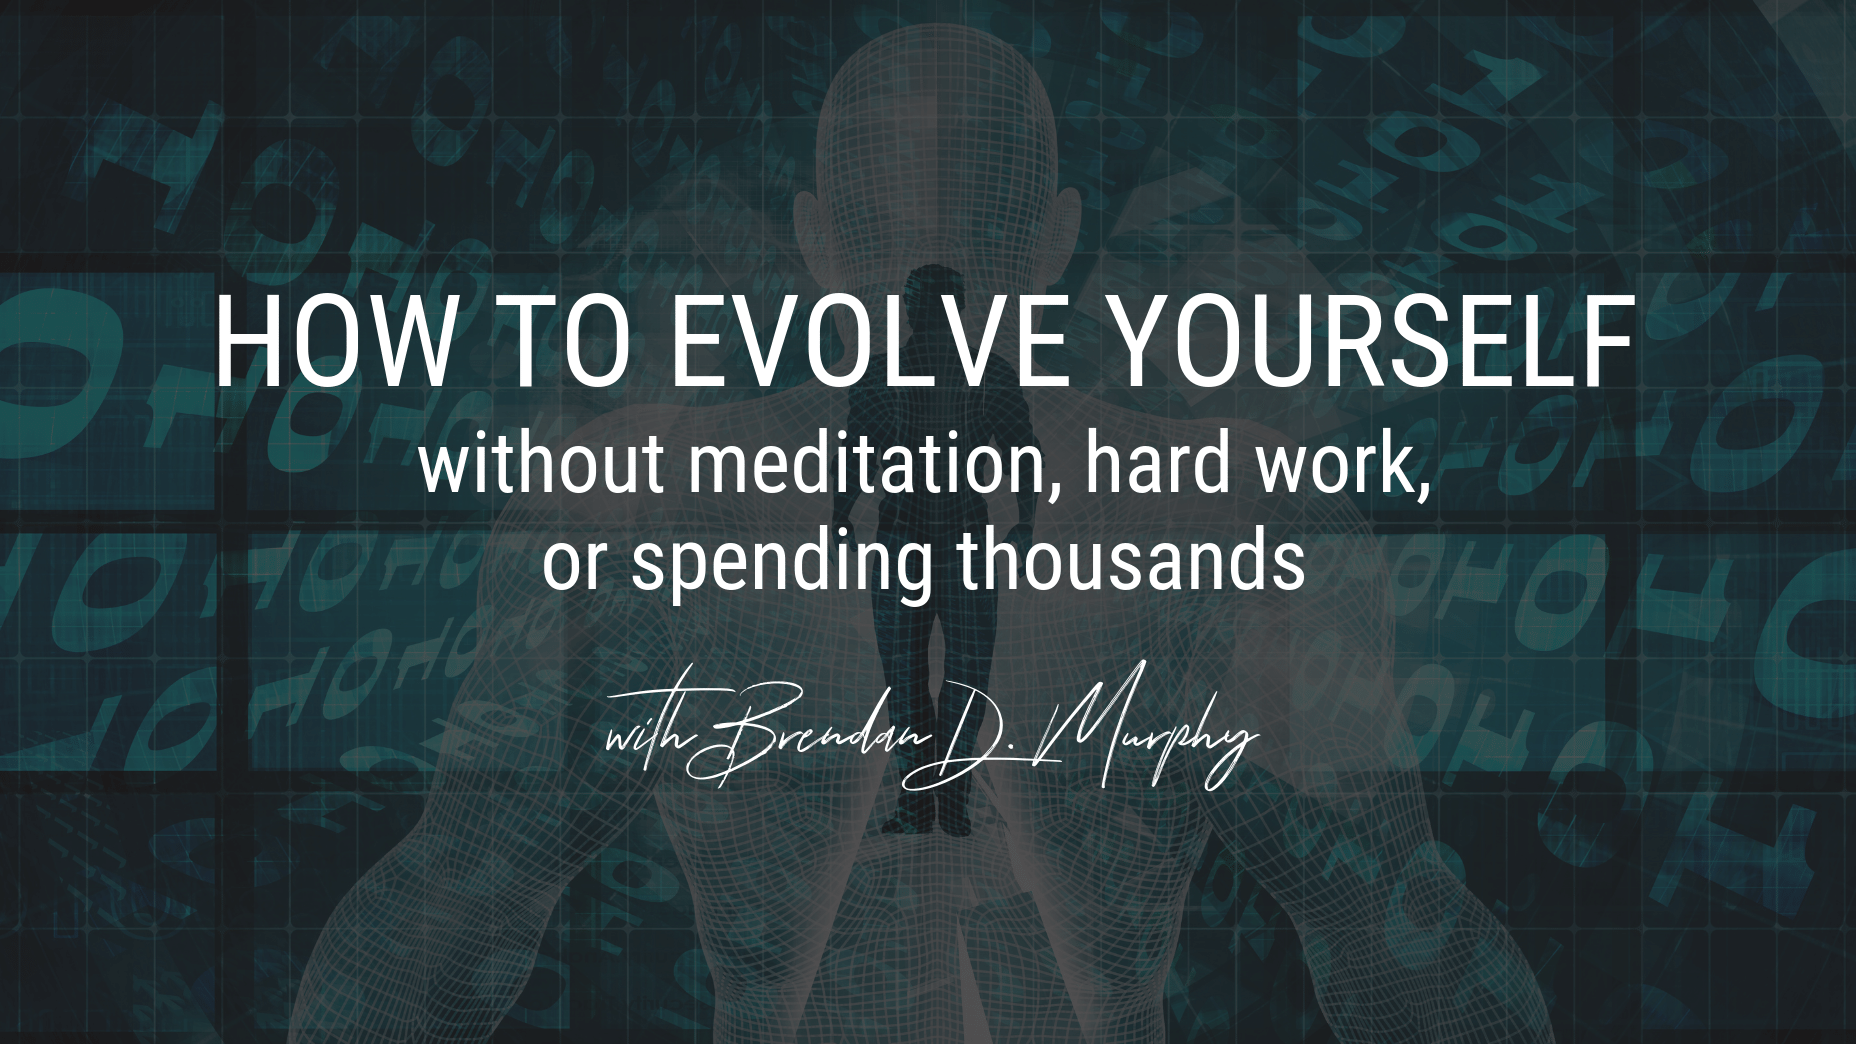 [Free Masterclass] How to Evolve Yourself Without Meditation, Hard Work, or Spending Thousands